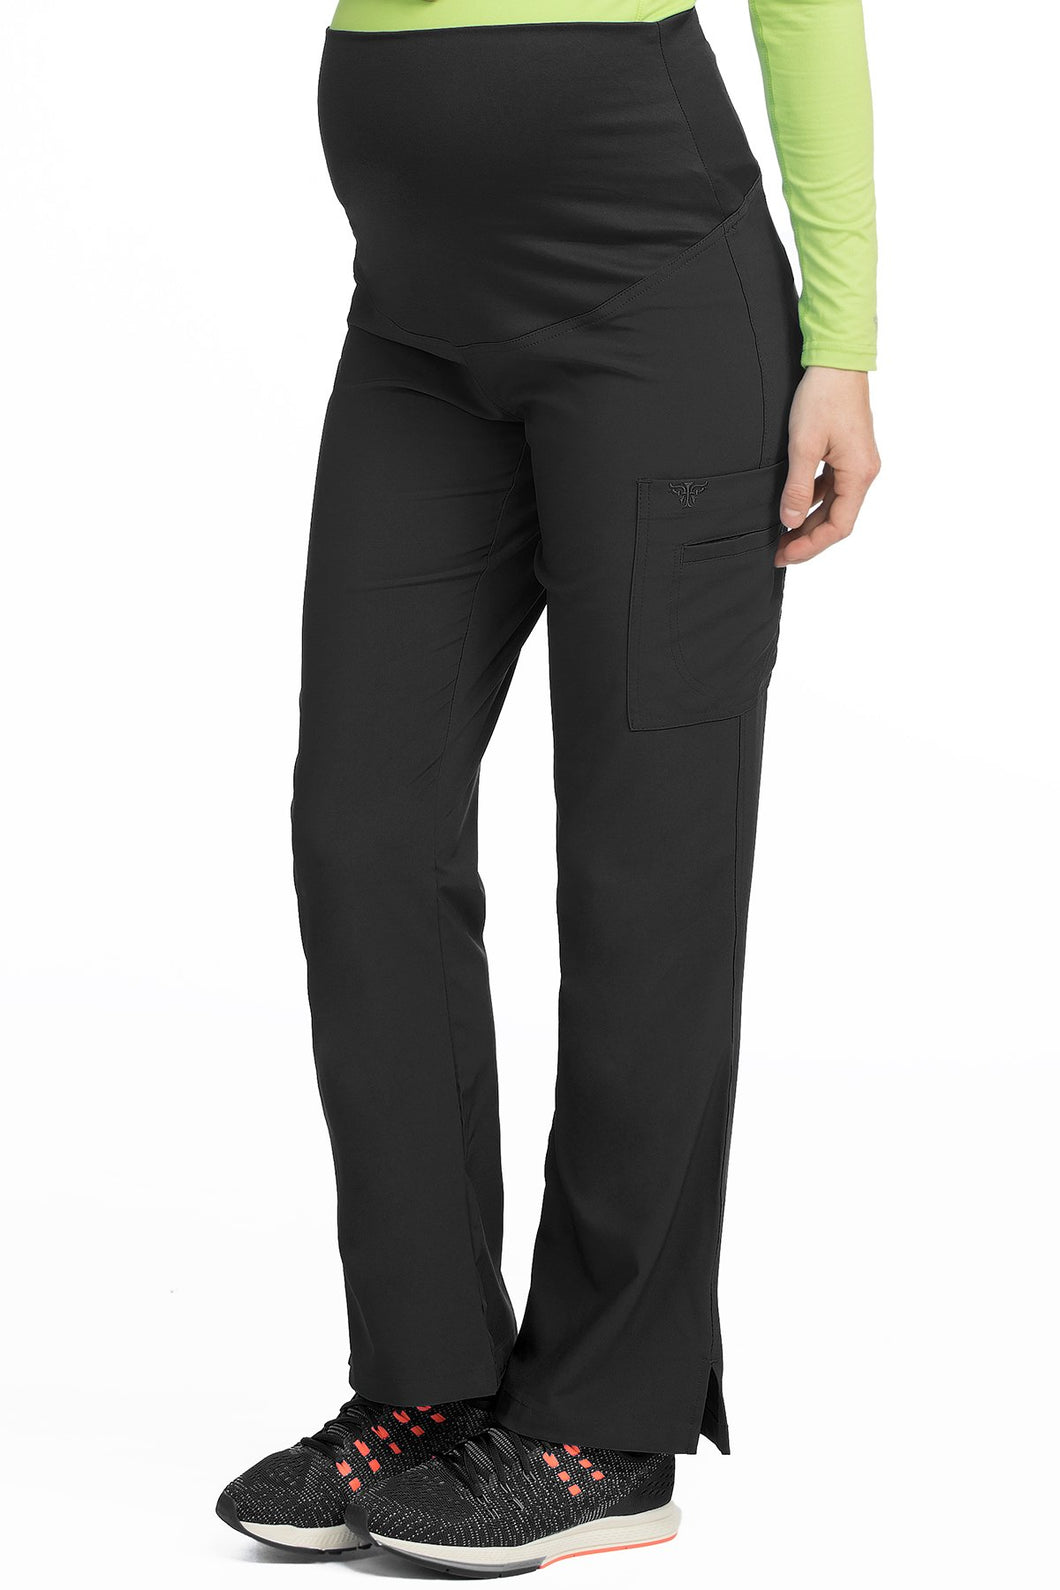 Med Couture Activate Maternity Pant